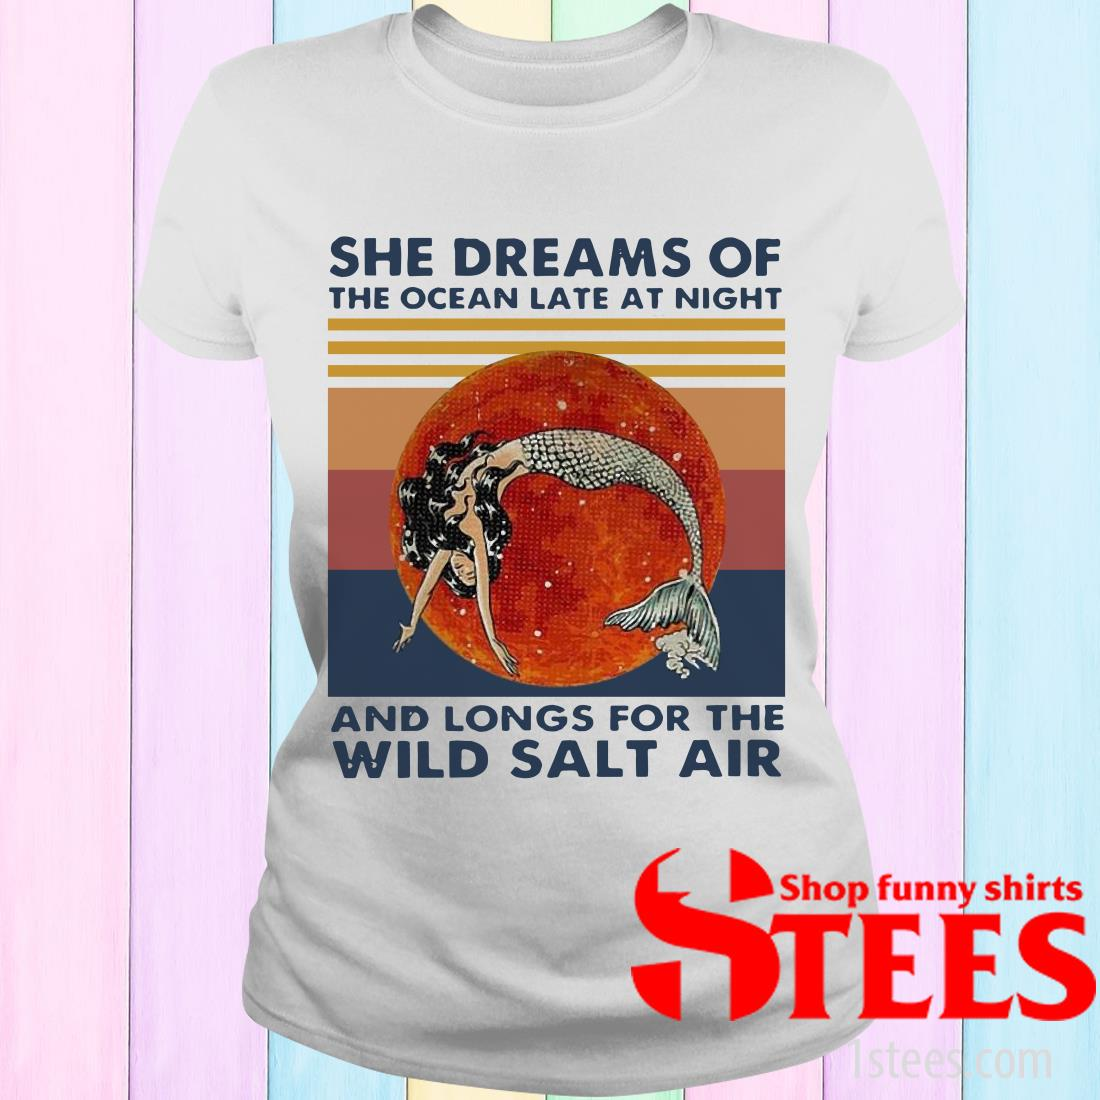 Vintage Mermaid She Dreams Of The Ocean Late At Night And Longs For The Wild Salt Air Women's T-Shirt